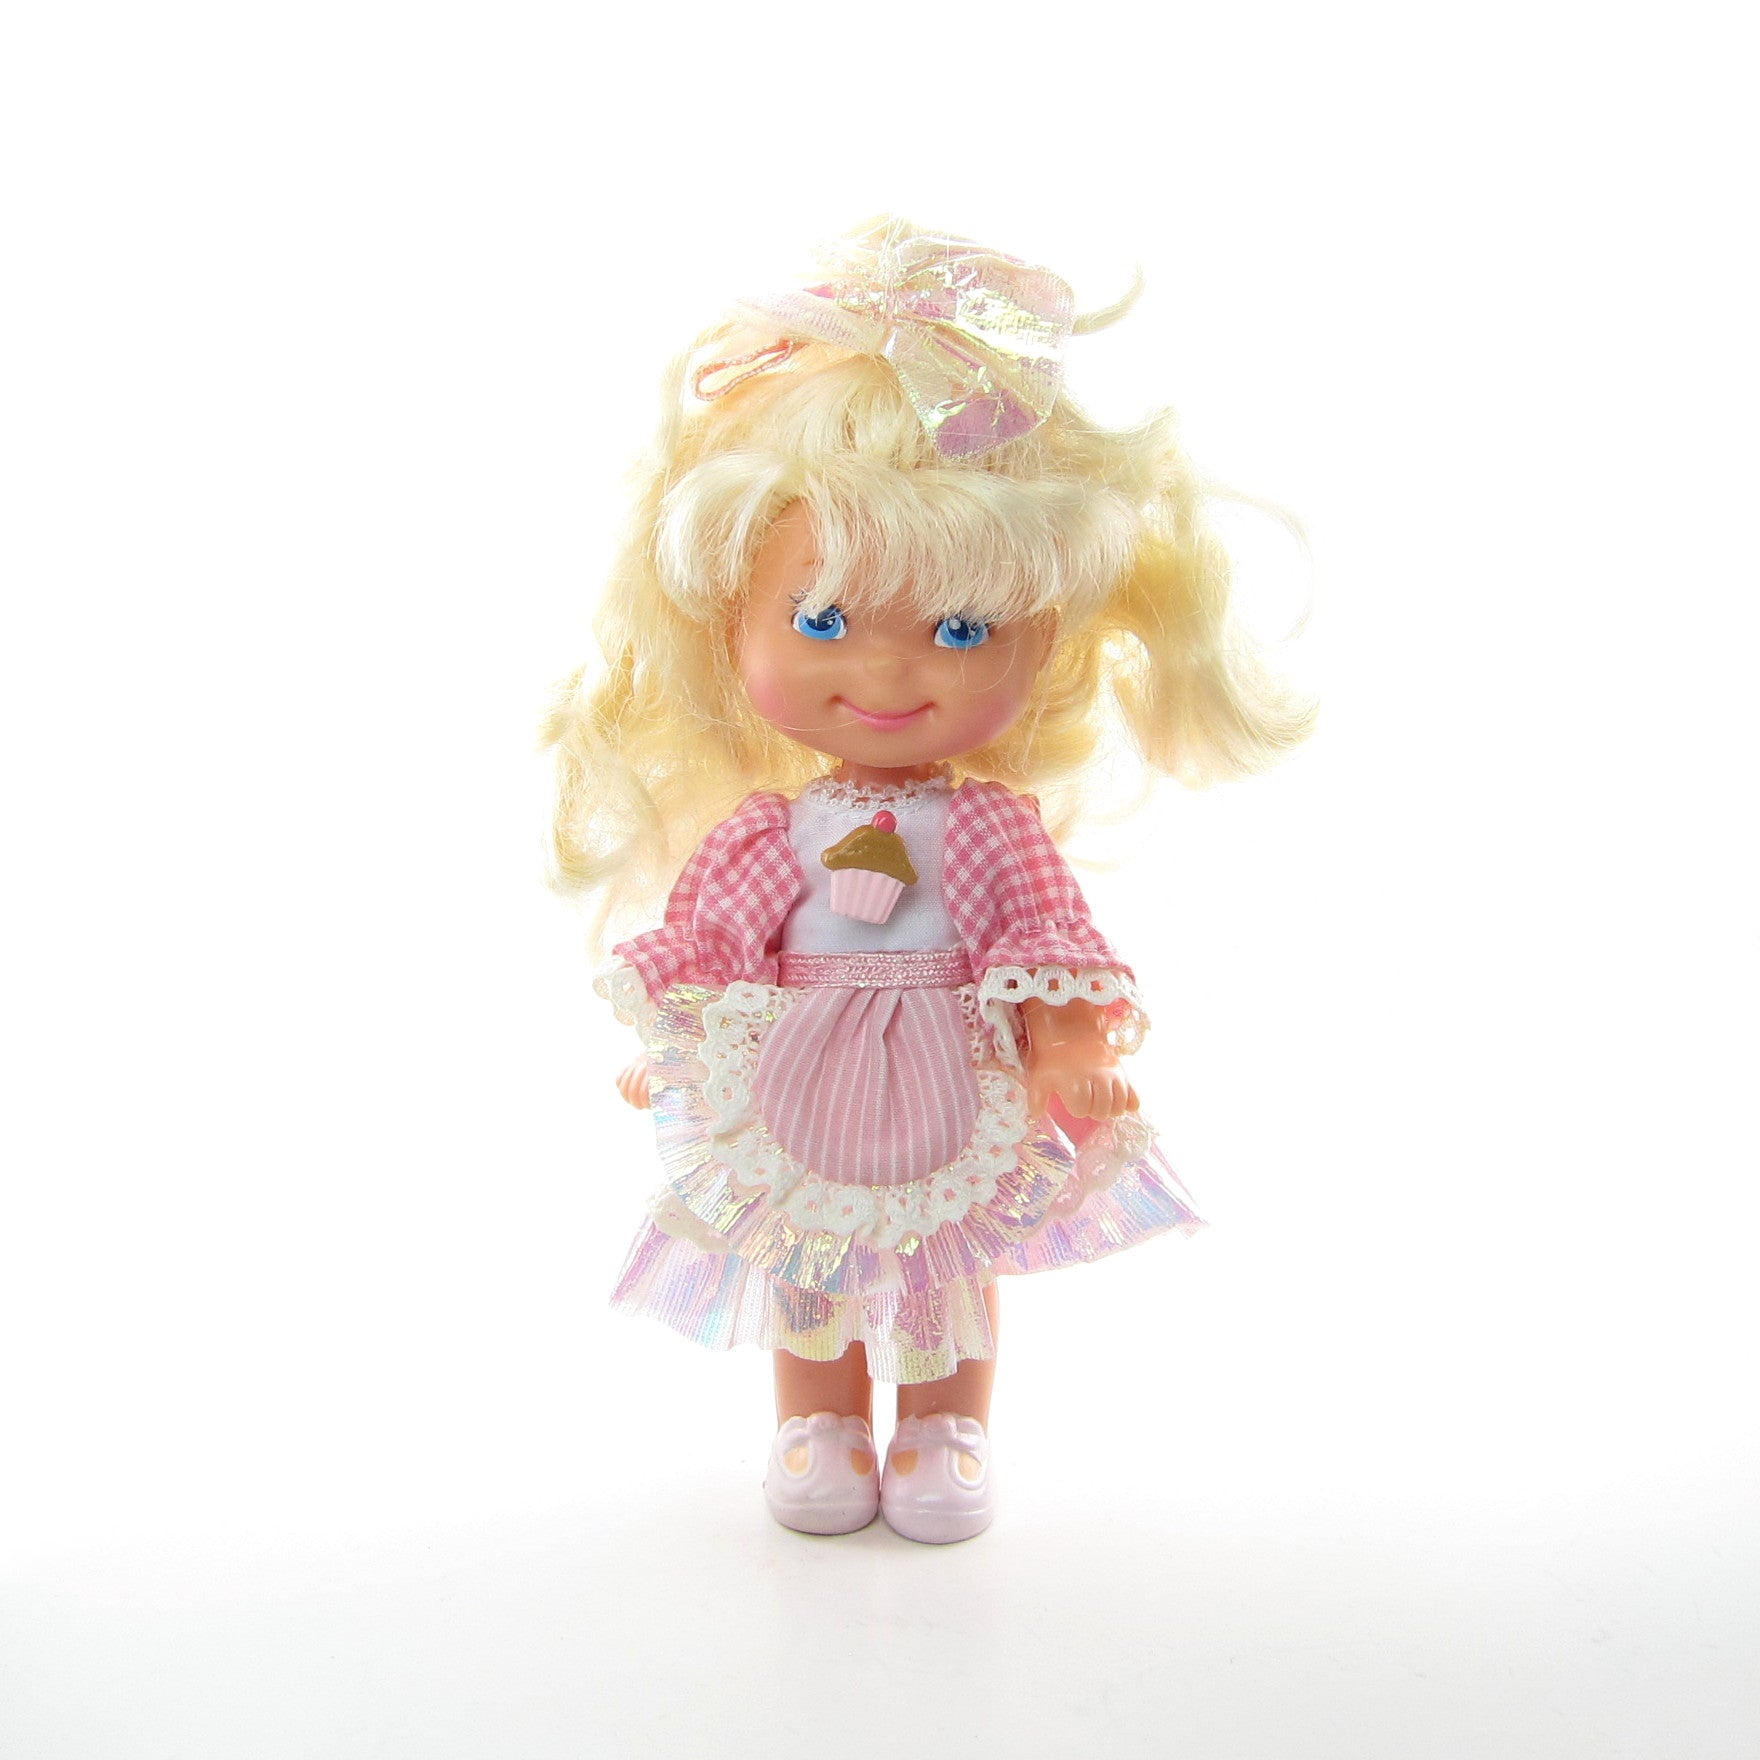 Cherry Merry Muffin 1988 First Issue doll